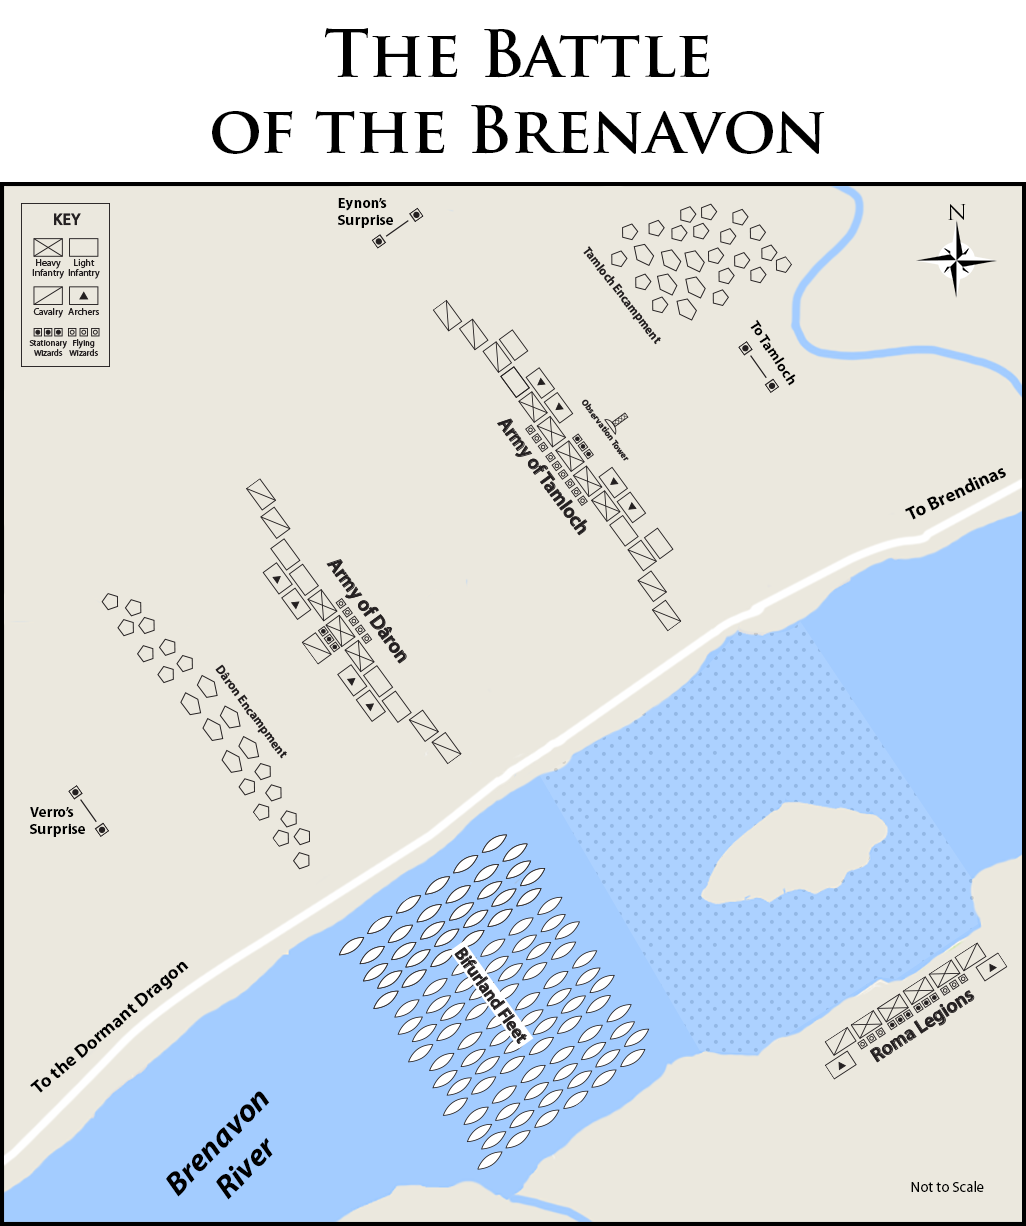 The Battle of the Brenavon